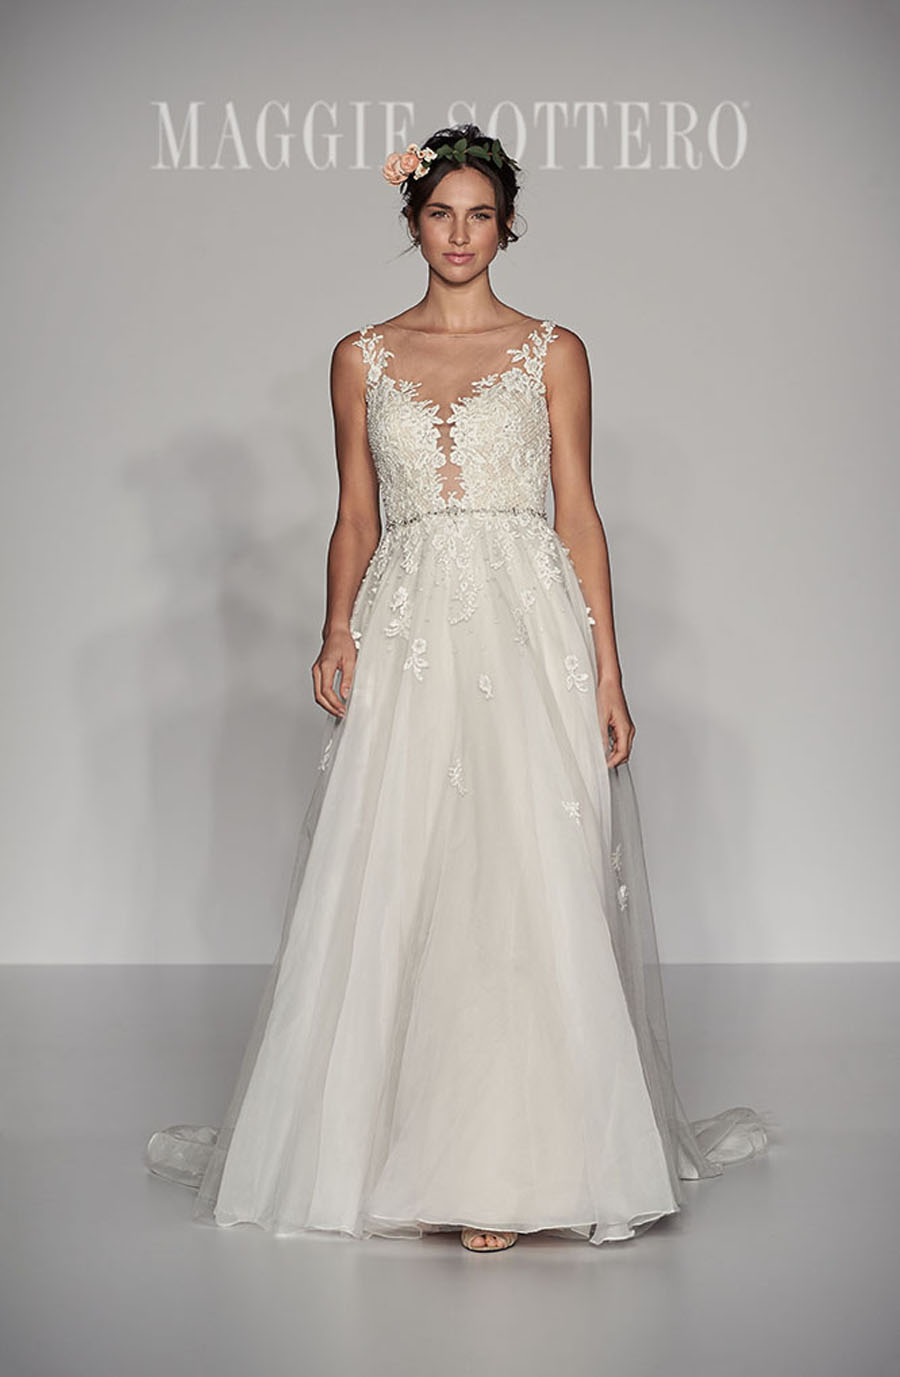 Maggie Sottero Spring 2017 Collection - Avery Front